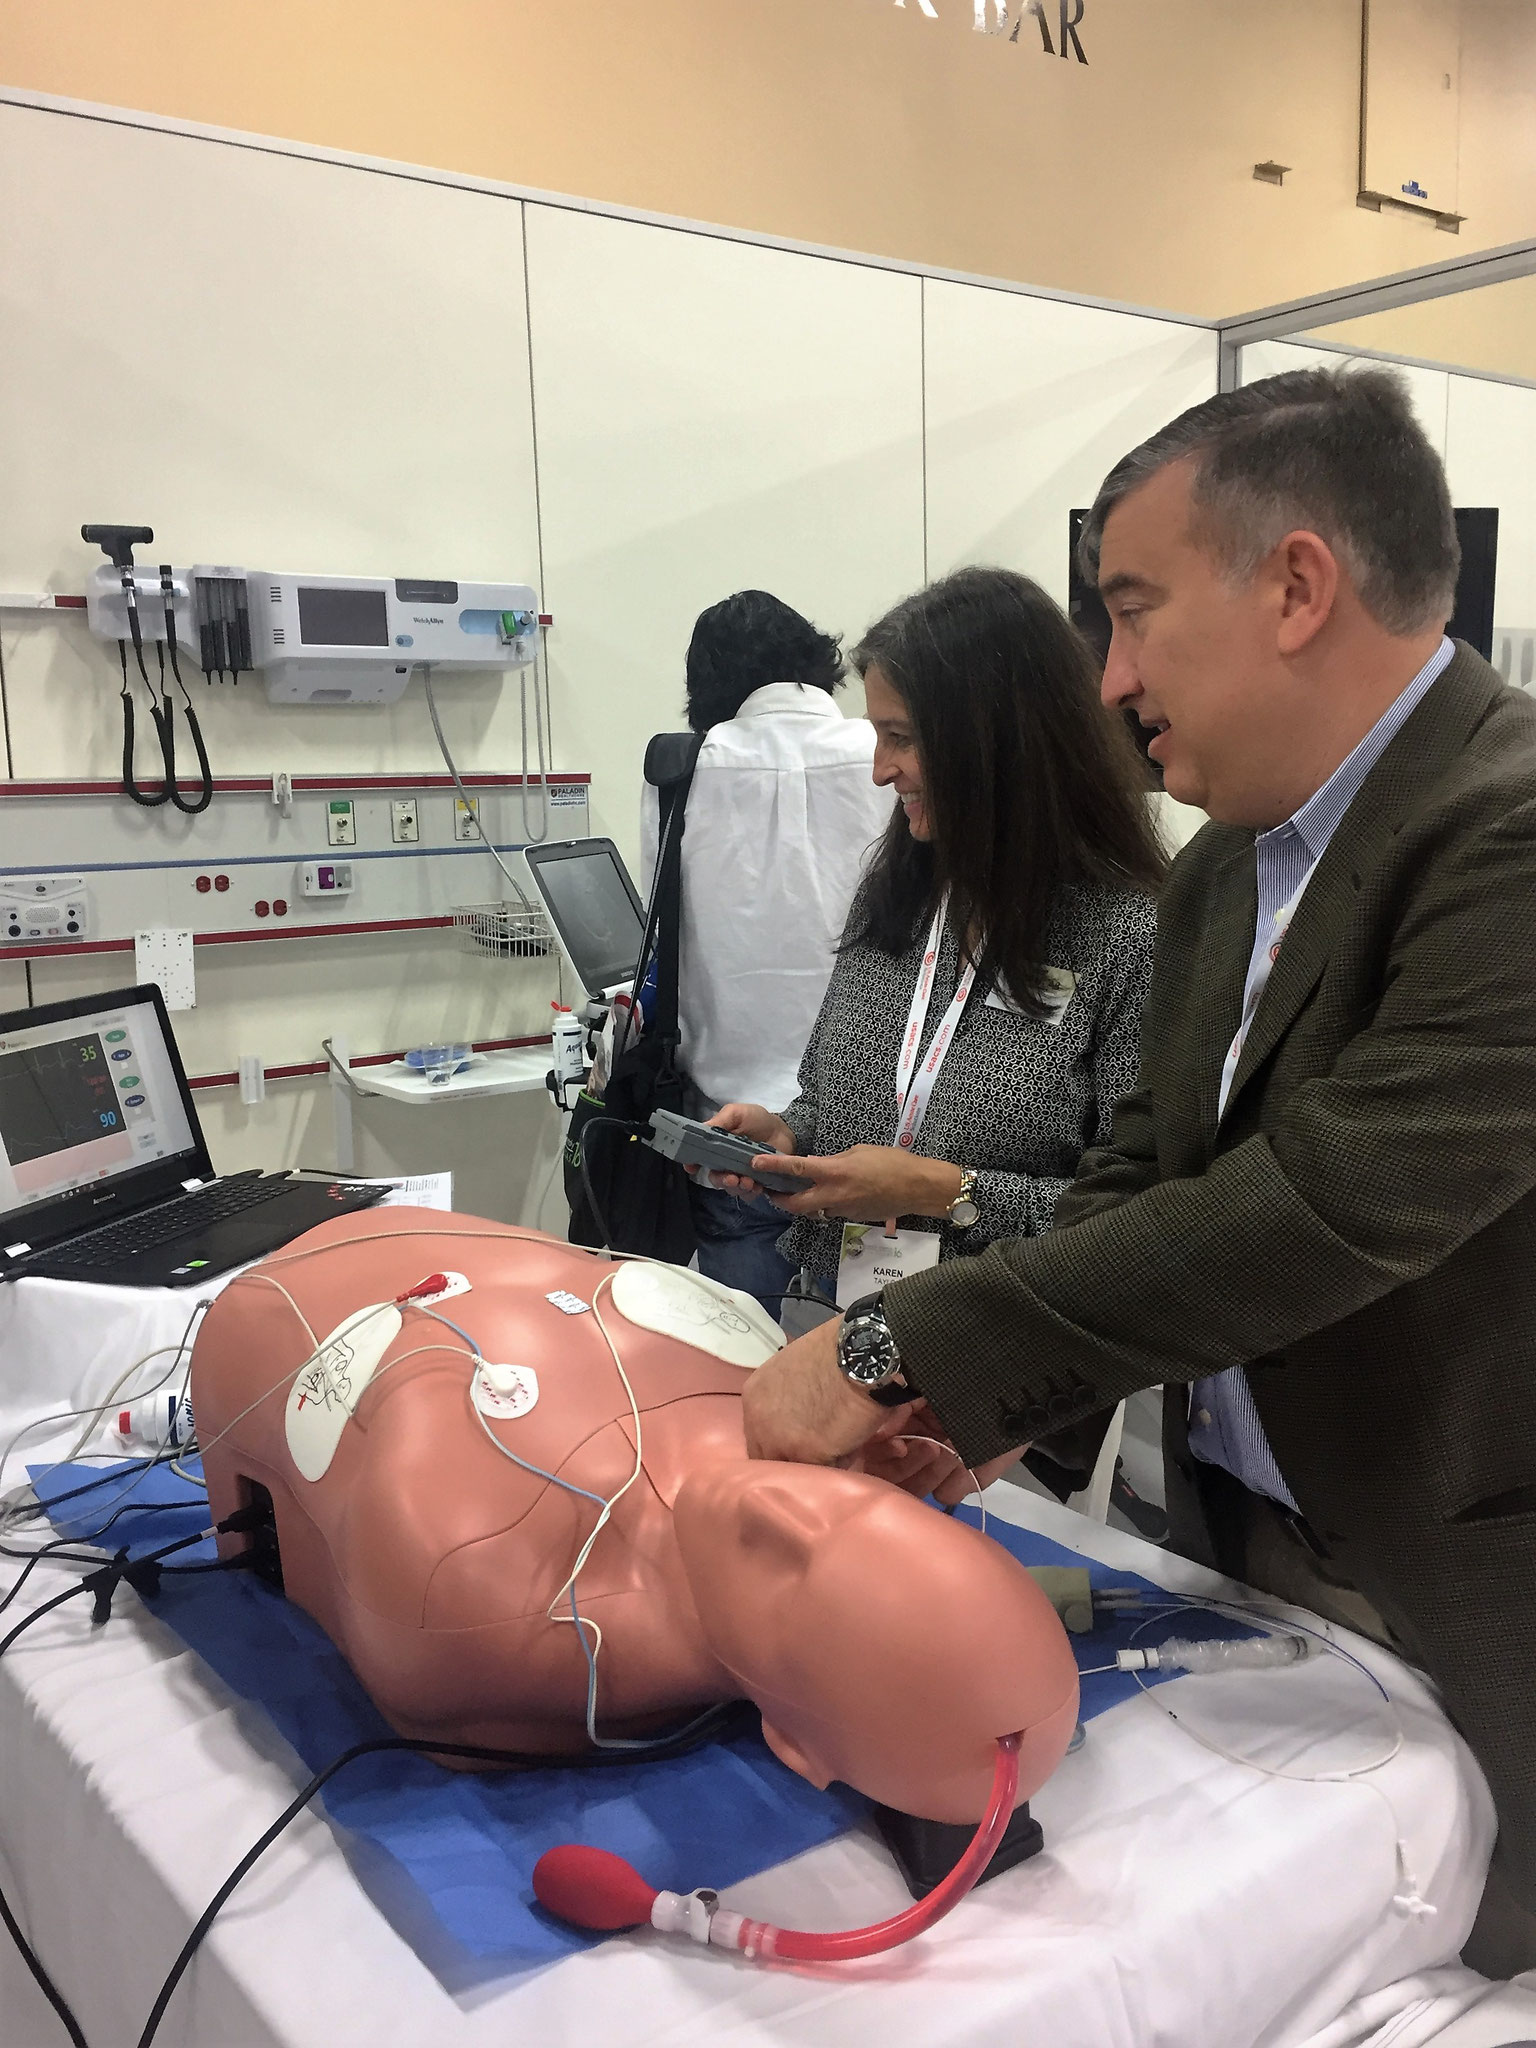 Pacemaker Simlab